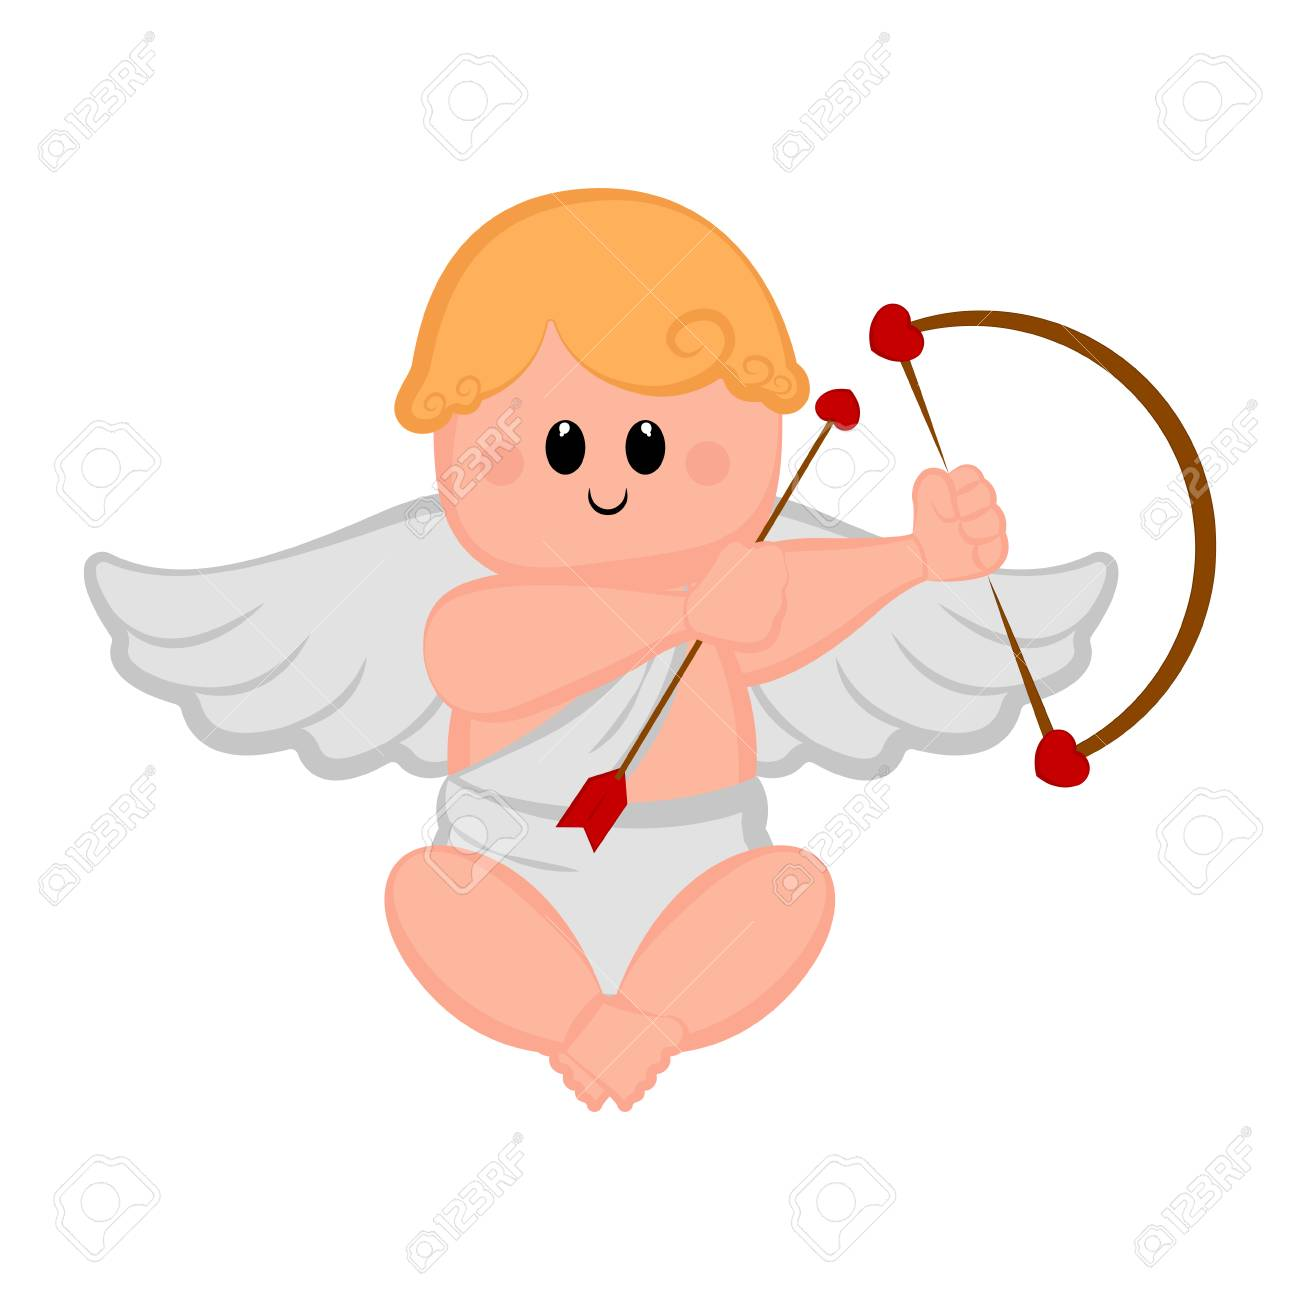 Cute Cupid Boy Icon With Bow And Arrows Valentine Day Vector